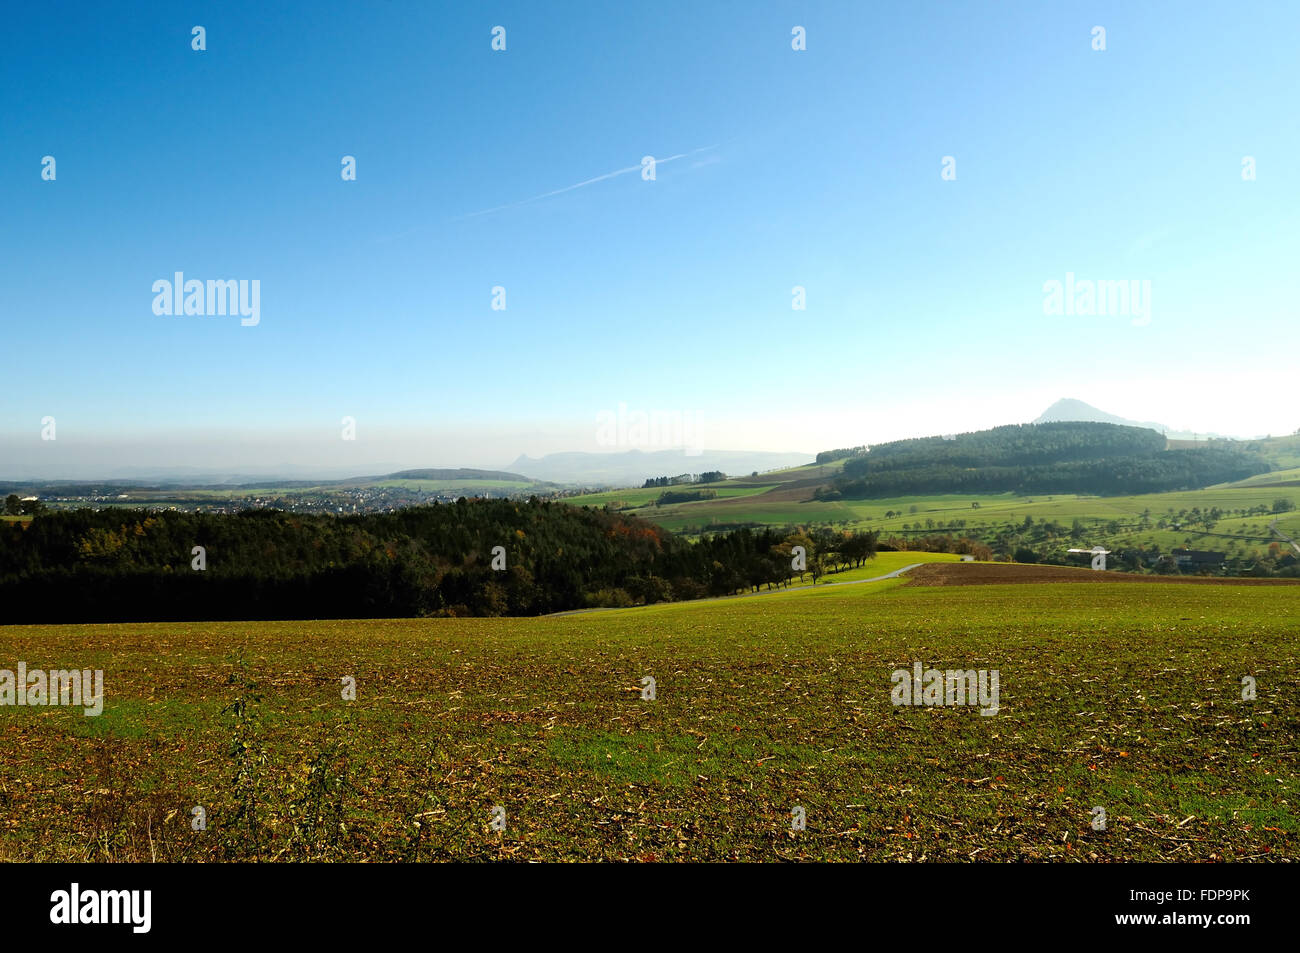 baden württemberg,distant view,hegau - Stock Image